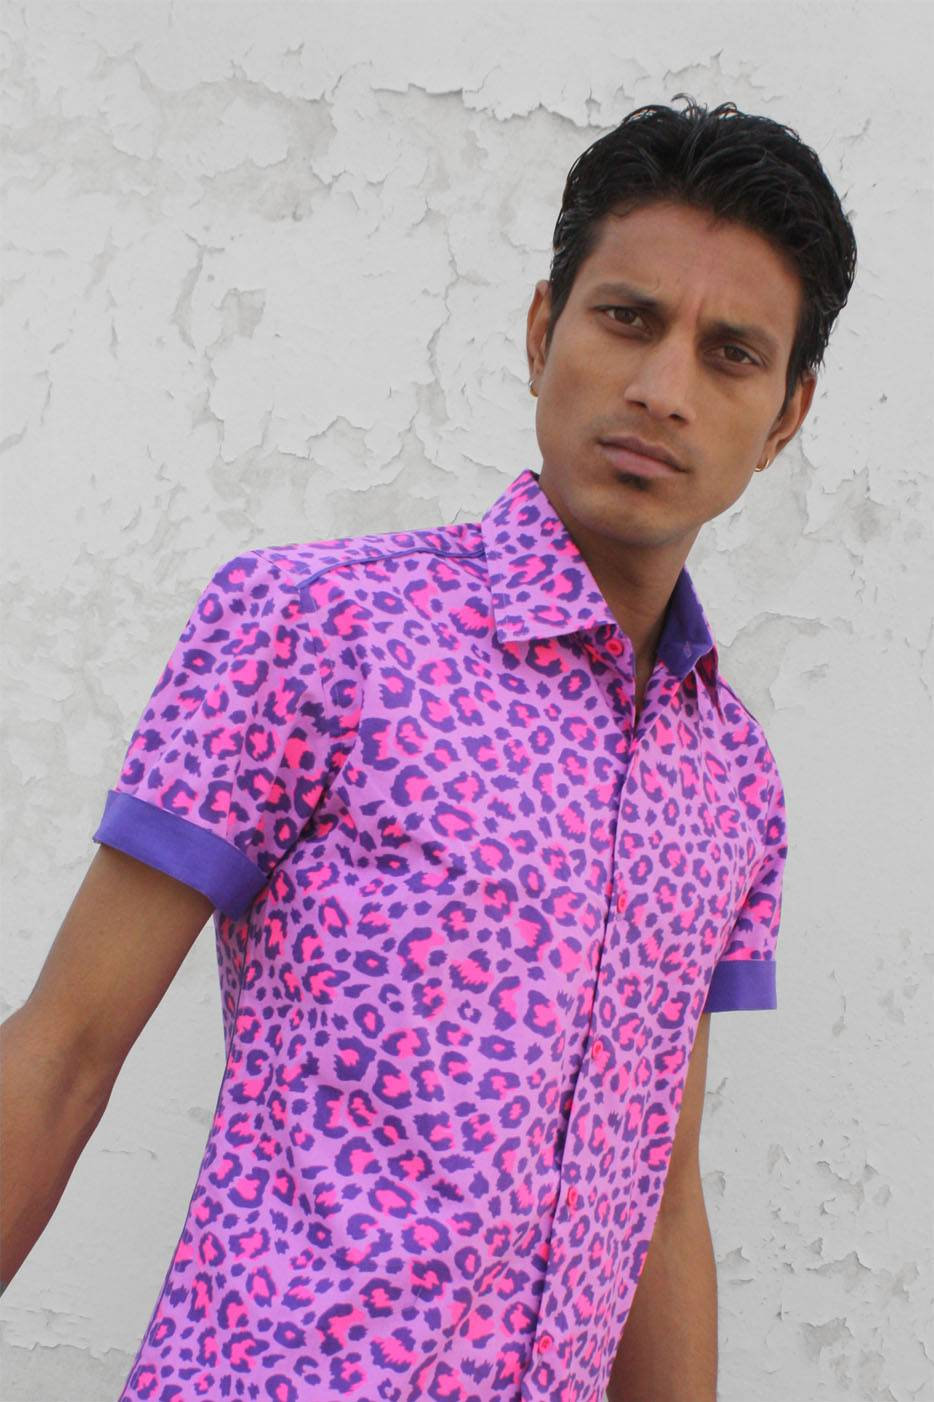 0678763ed239 ... Baïsap - Leopard shirt for men, short sleeve - Pink Leopard - Short  sleeve dress ...